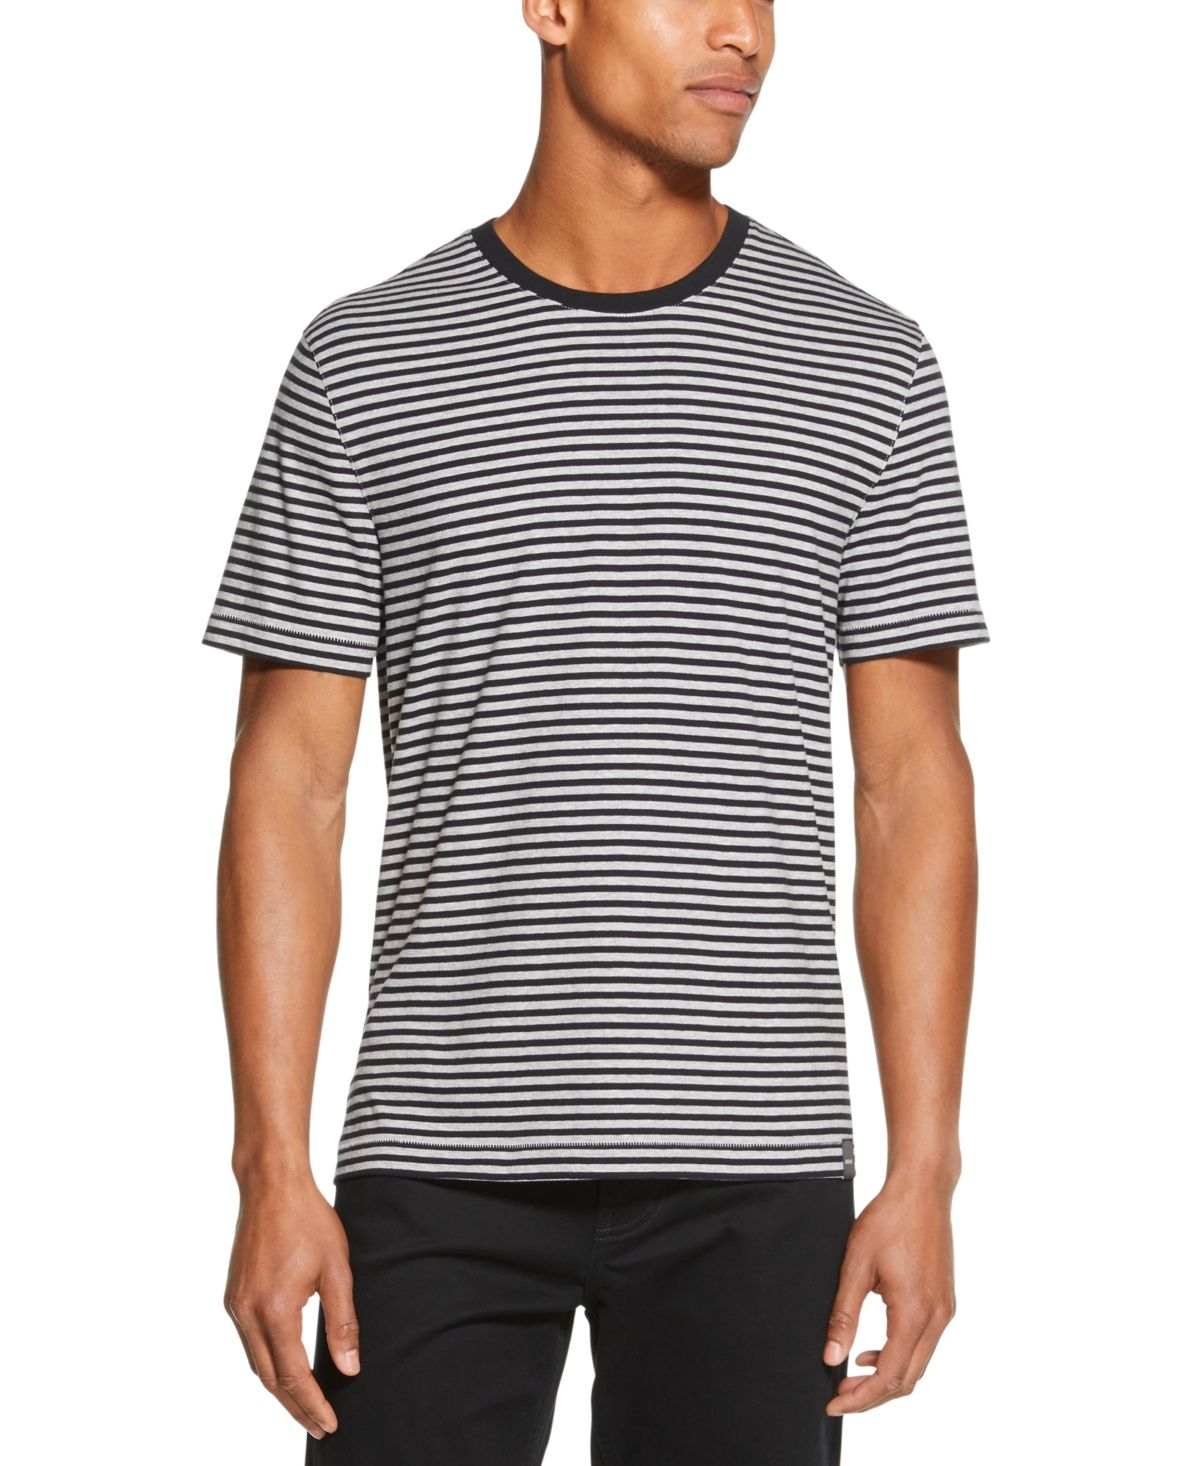 DKNY Men/'s Short Sleeve Tee Shirt Choose Size /& Color H